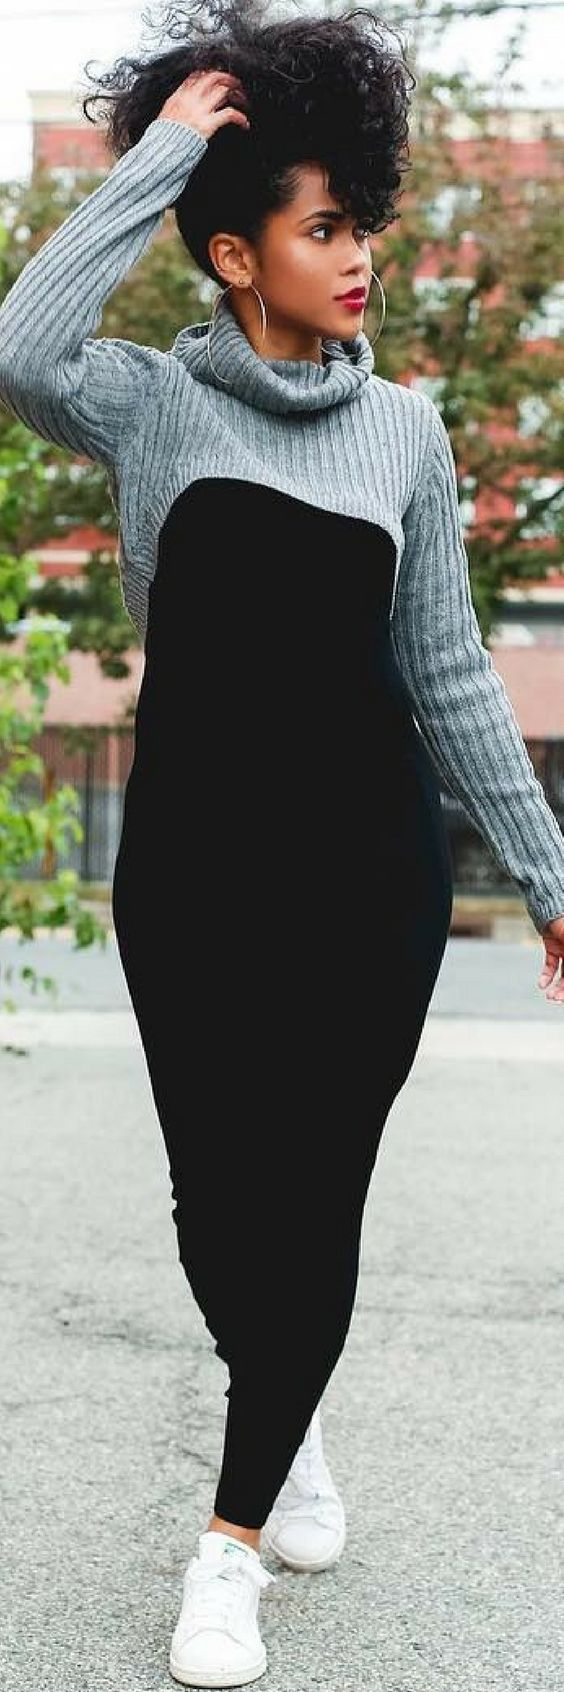 How To Improve Your Look With A Simple Crop Sweater http://ecstasymodels.blog/2017/11/04/improve-look-simple-crop-sweater/